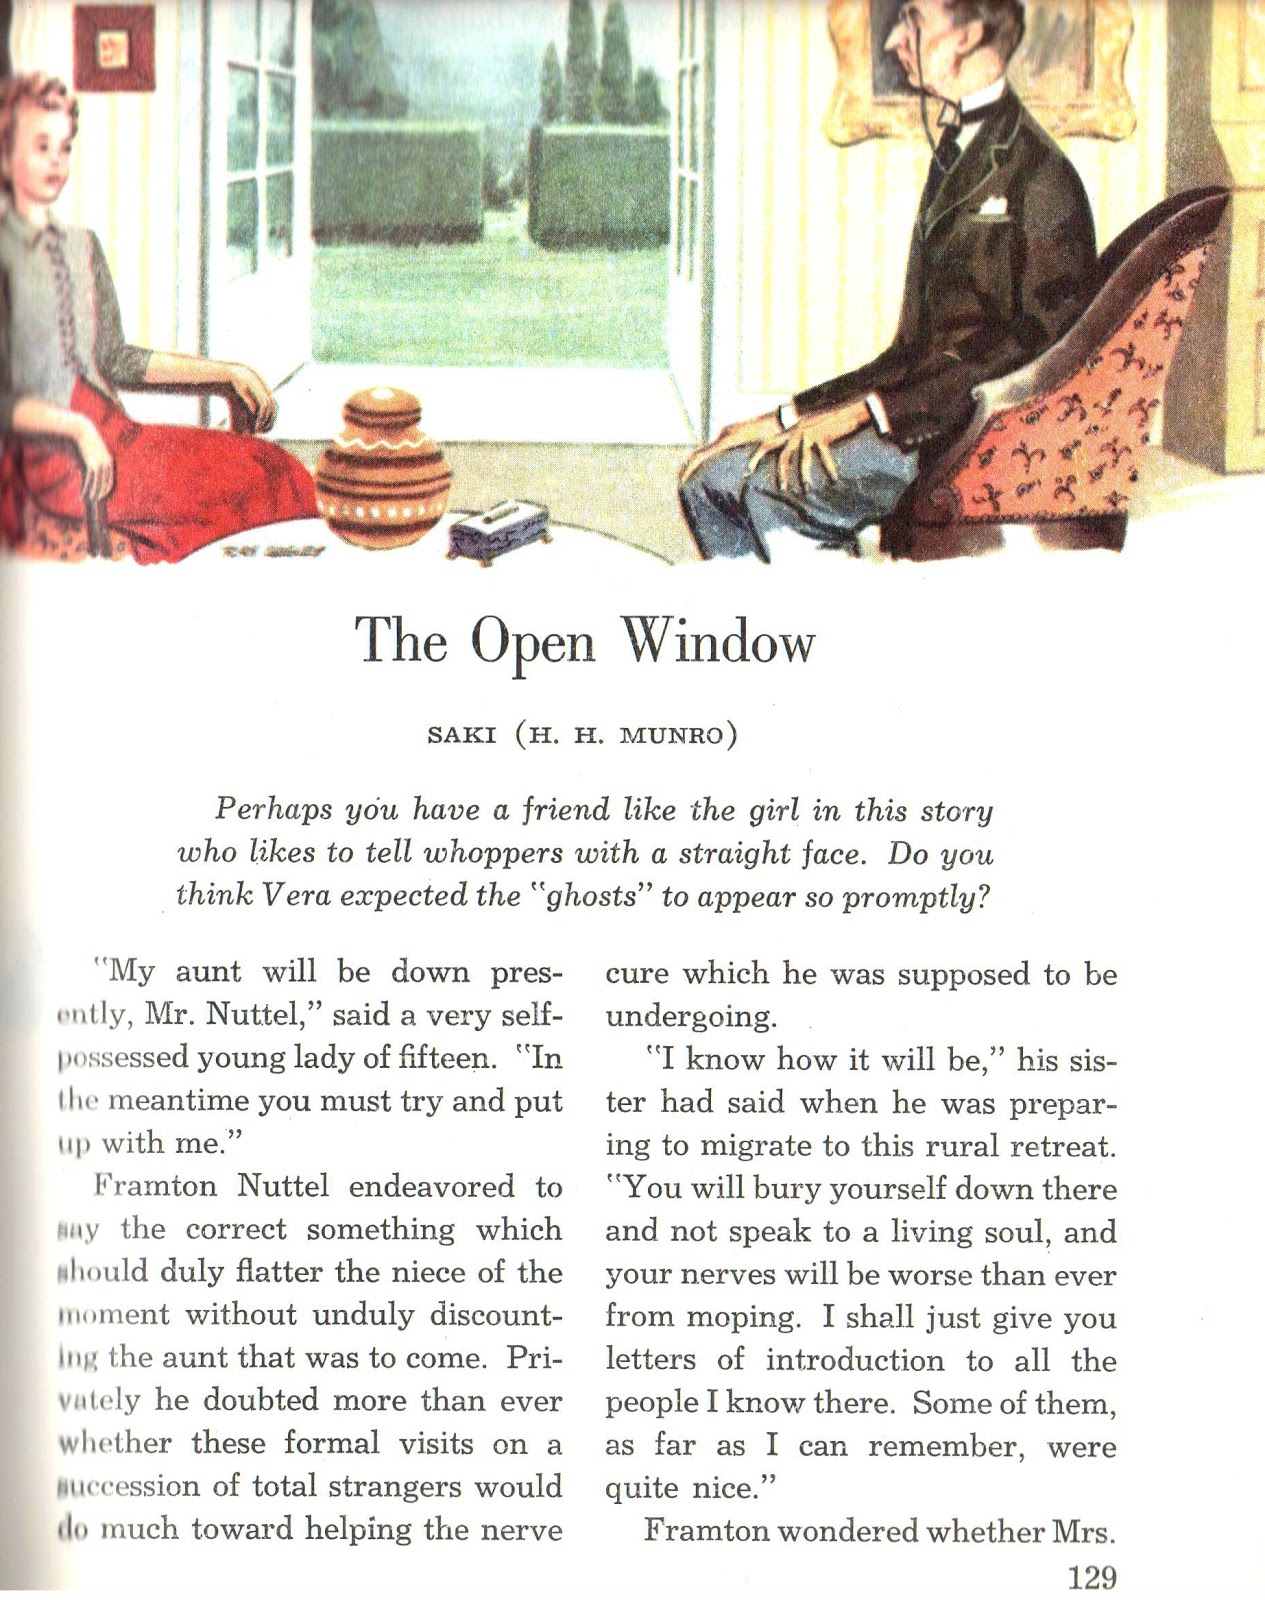 the open window by saki analysis The open window by saki - detailed summary & analysis summary and analysis.